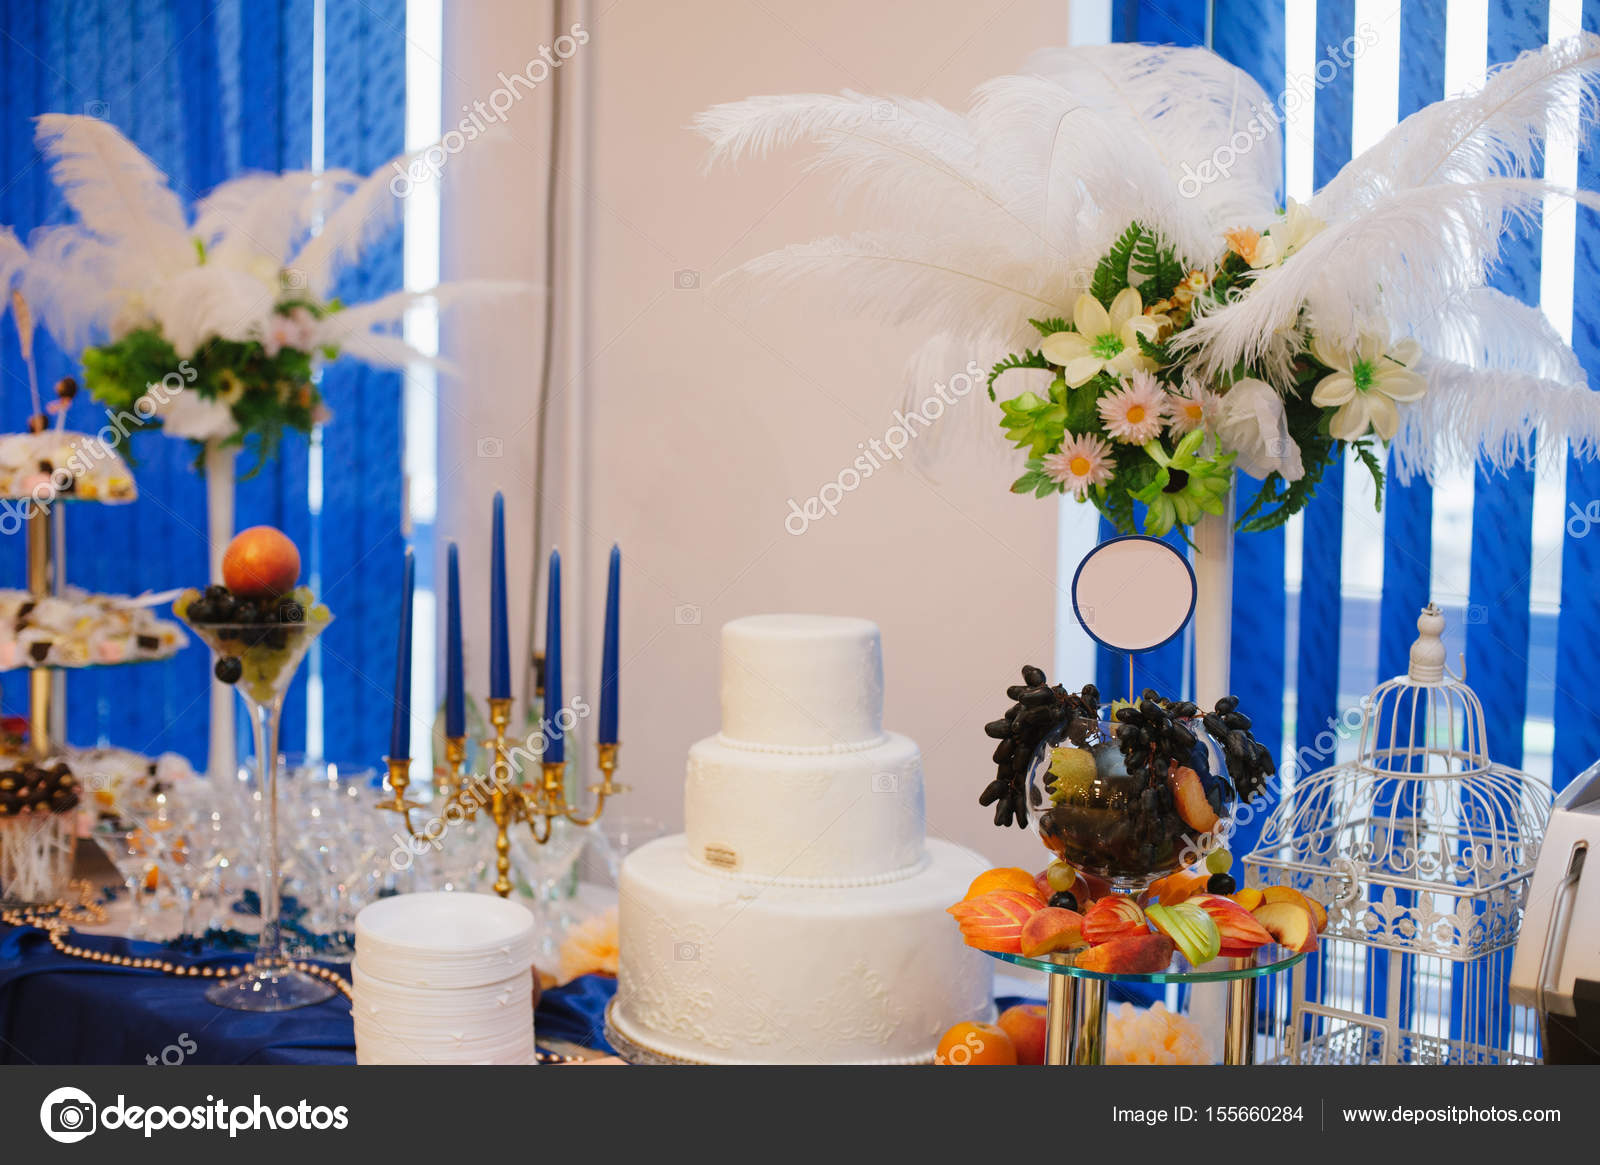 Dessert Buffet Table Ideas Buffet Table With Sweets And Nice Decor Stock Photo C Marienalien 155660284